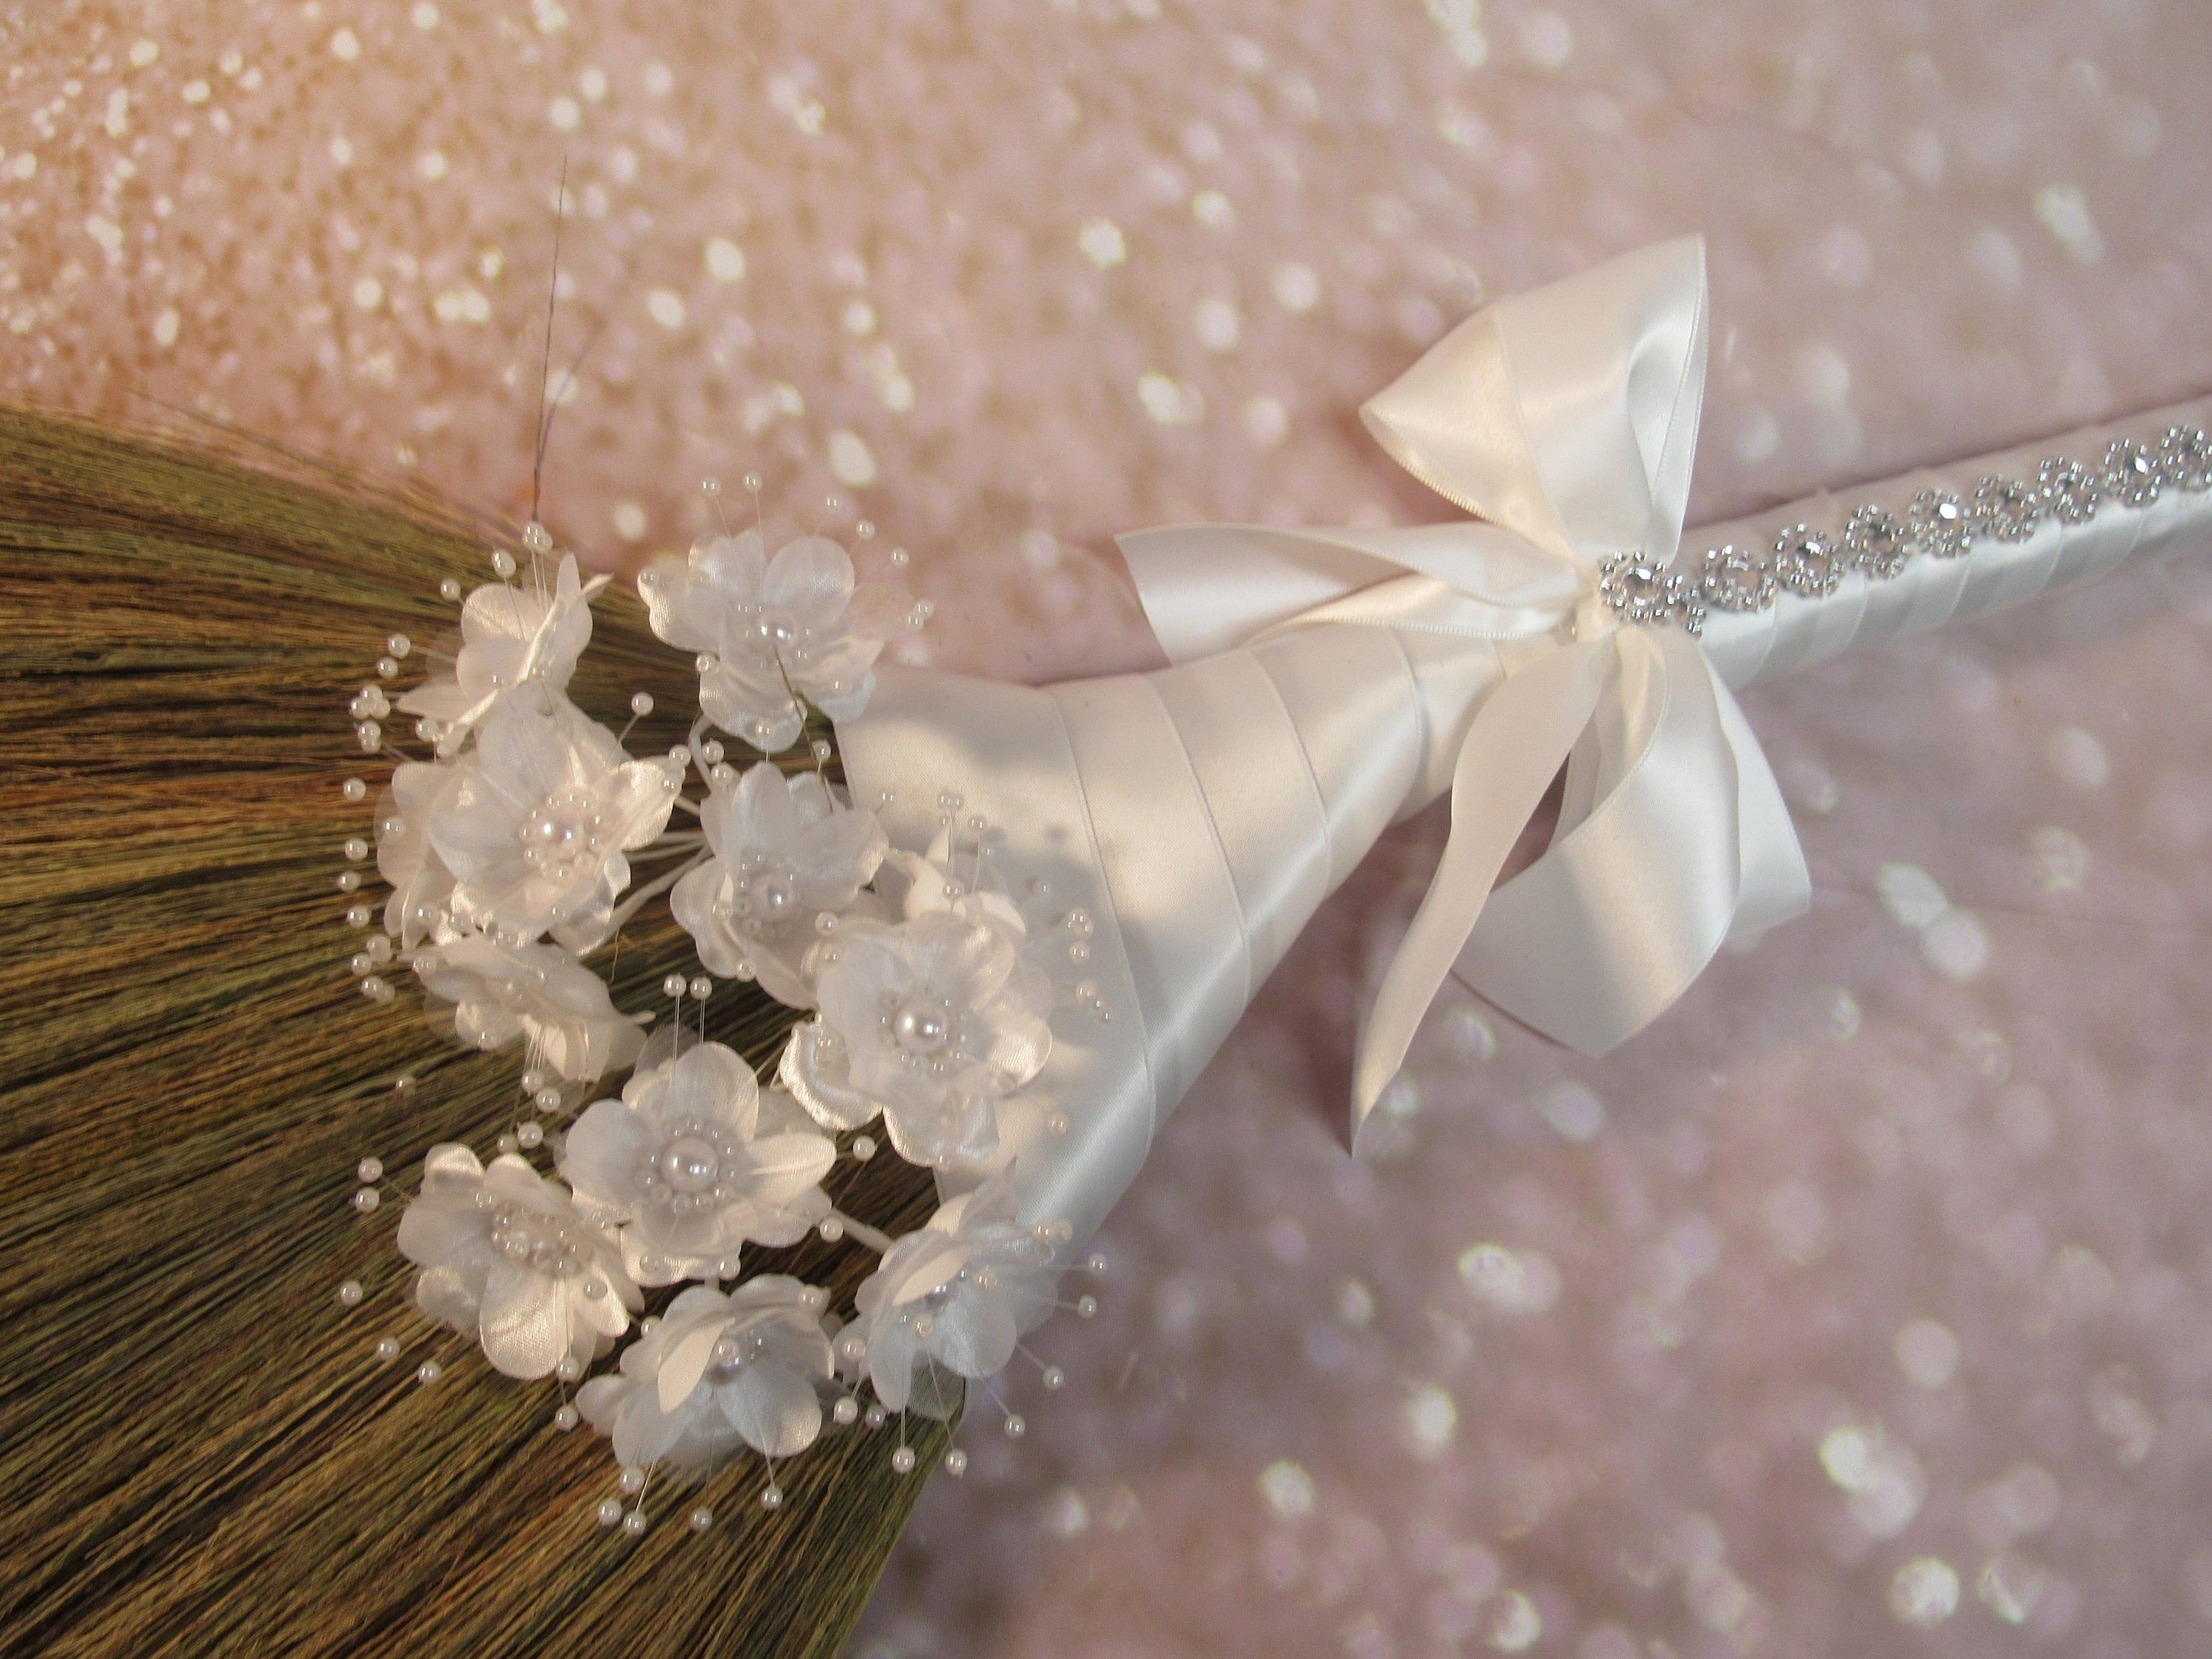 Wedding Jump Broom With Bling For Jumping The Broom Ceremony Beaded Pearl Flowers White Ribbon Please Read Ad For Detai In 2020 Wedding Broom Bling White Ribbon